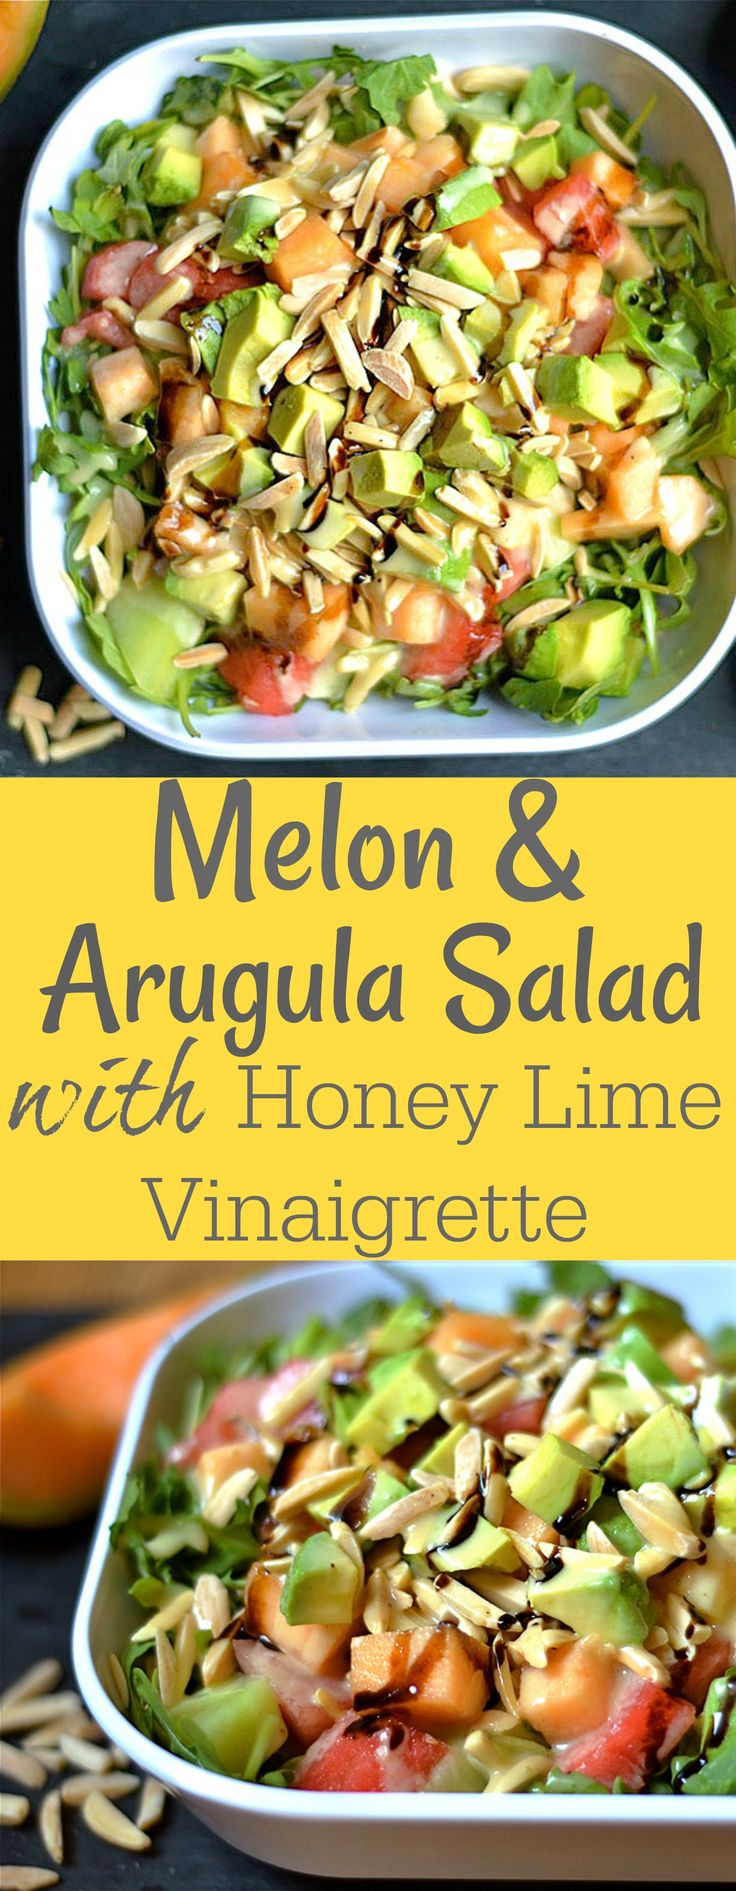 Simple and easy summer salad that is such a crowd pleaser! So many yummy flavors!